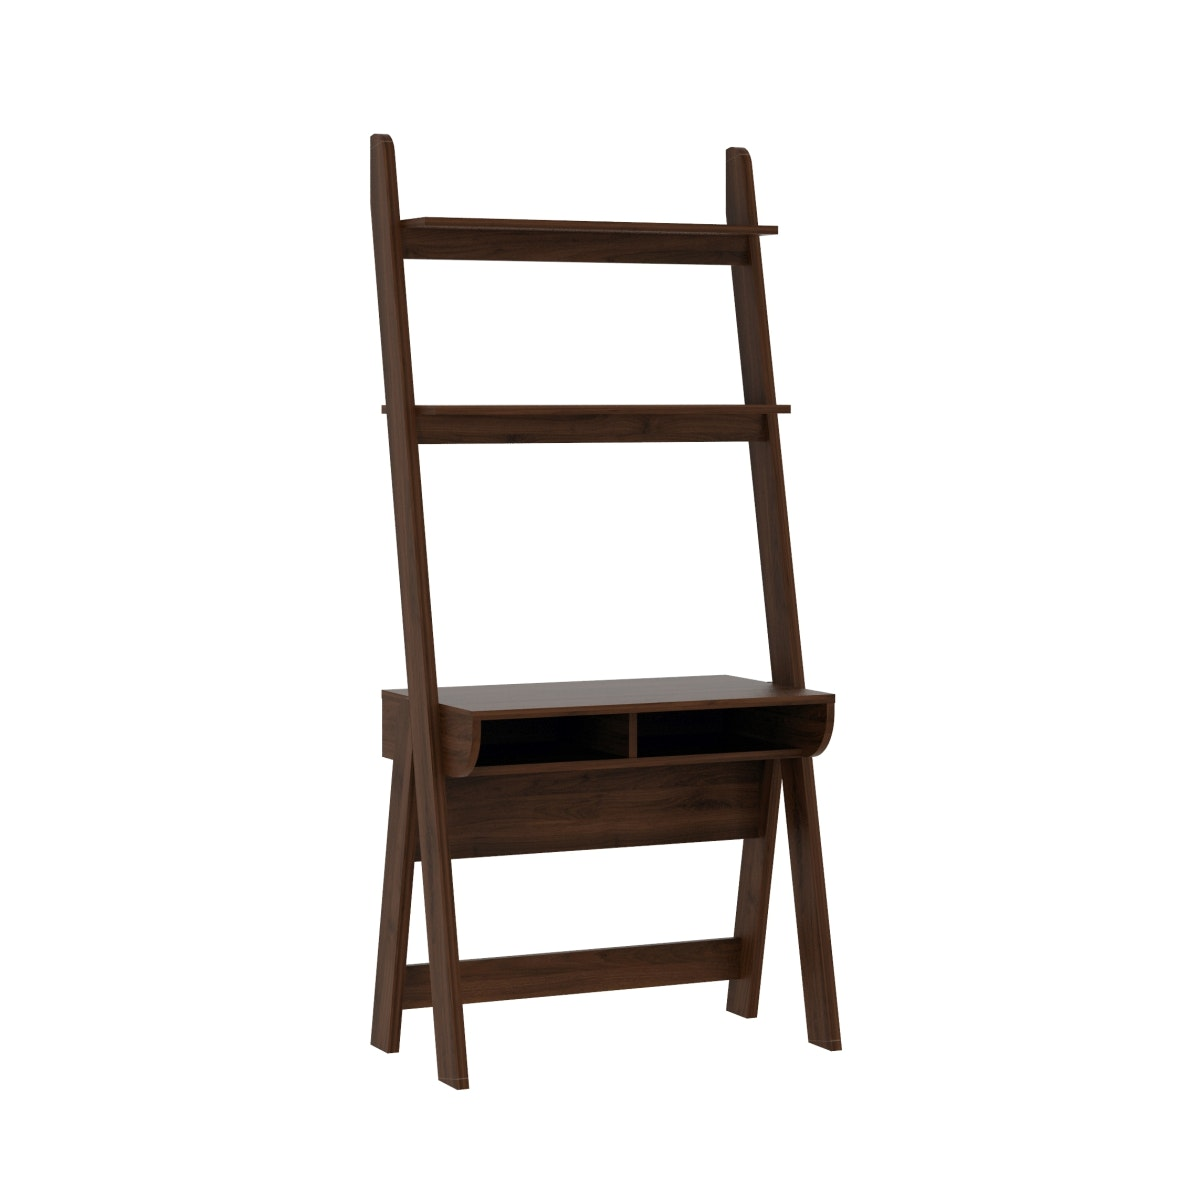 Pro Design Lambda Unit Rak Meja Kerja - Brown Walnut